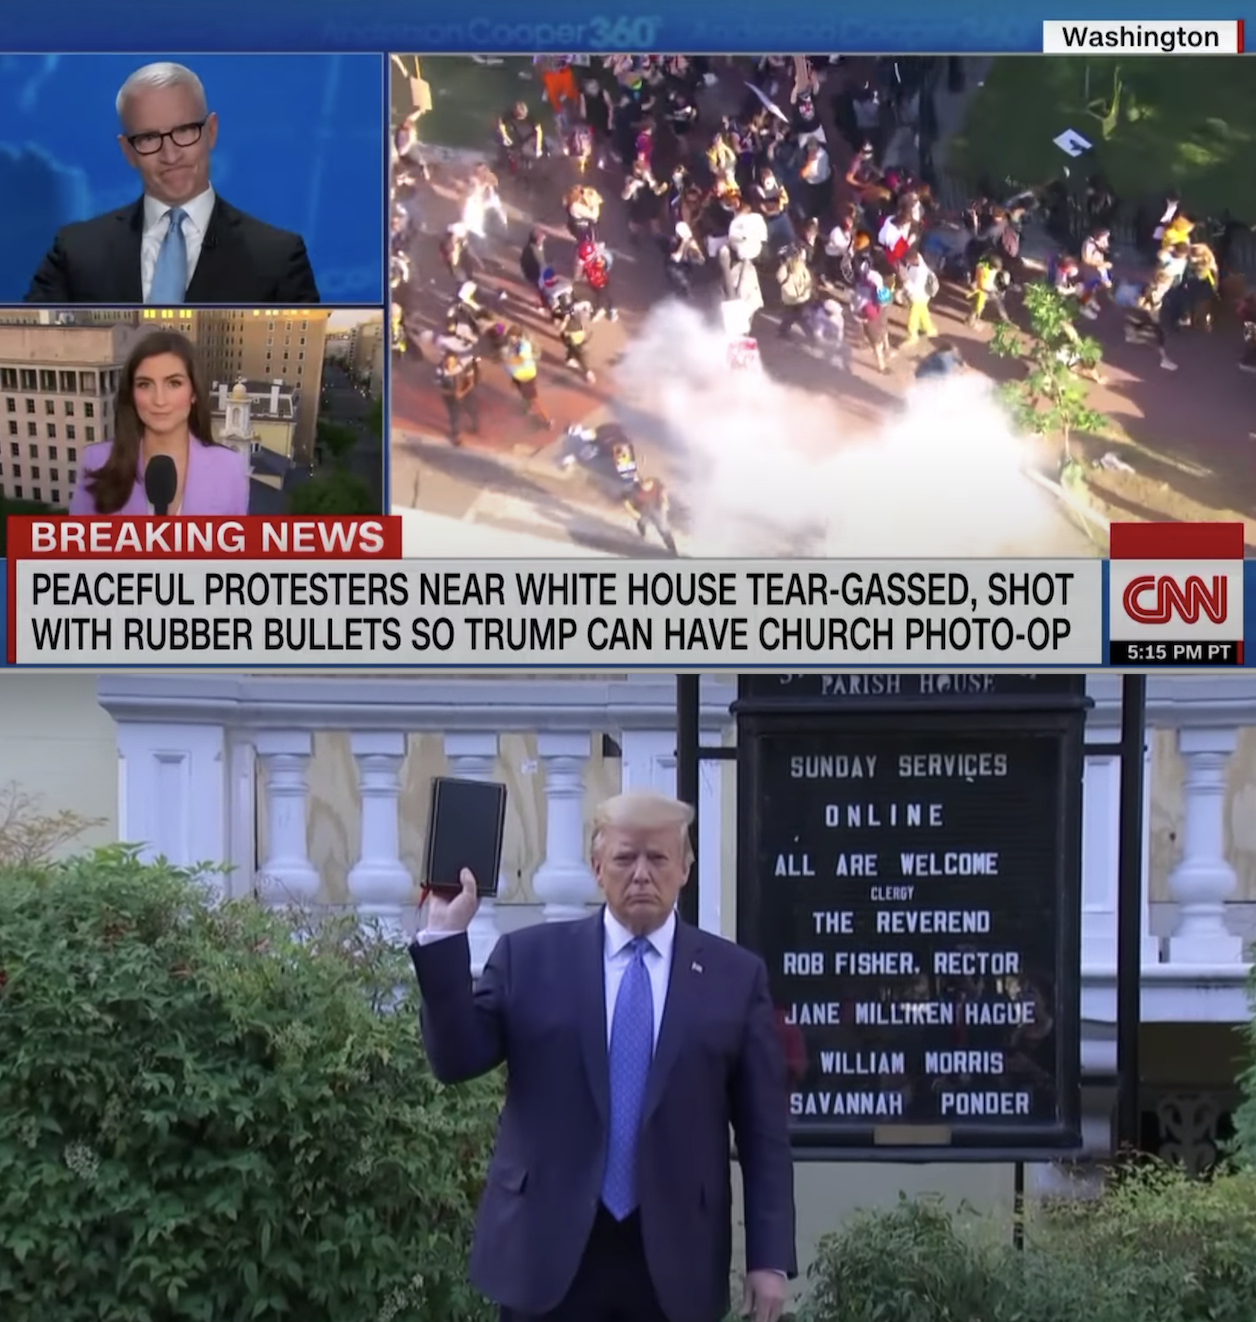 Screenshots from a news report of officers charging at, tear-gassing, and pepper-spraying peaceful protestors moments before Trump holds a Bible upside down in front of a church